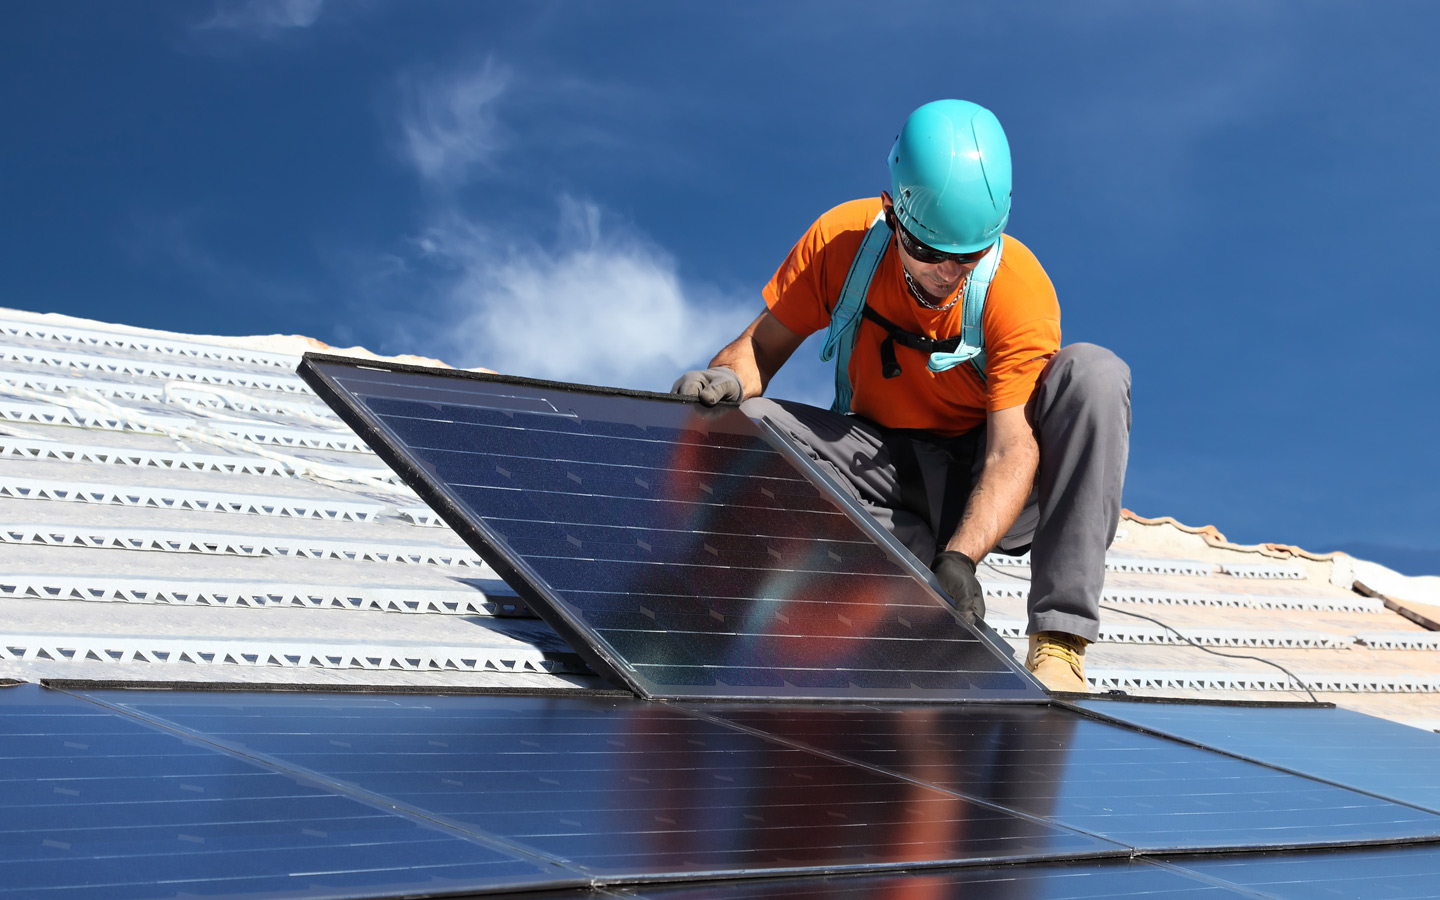 The main expense for to using solar power are the costs of setting up solar panels